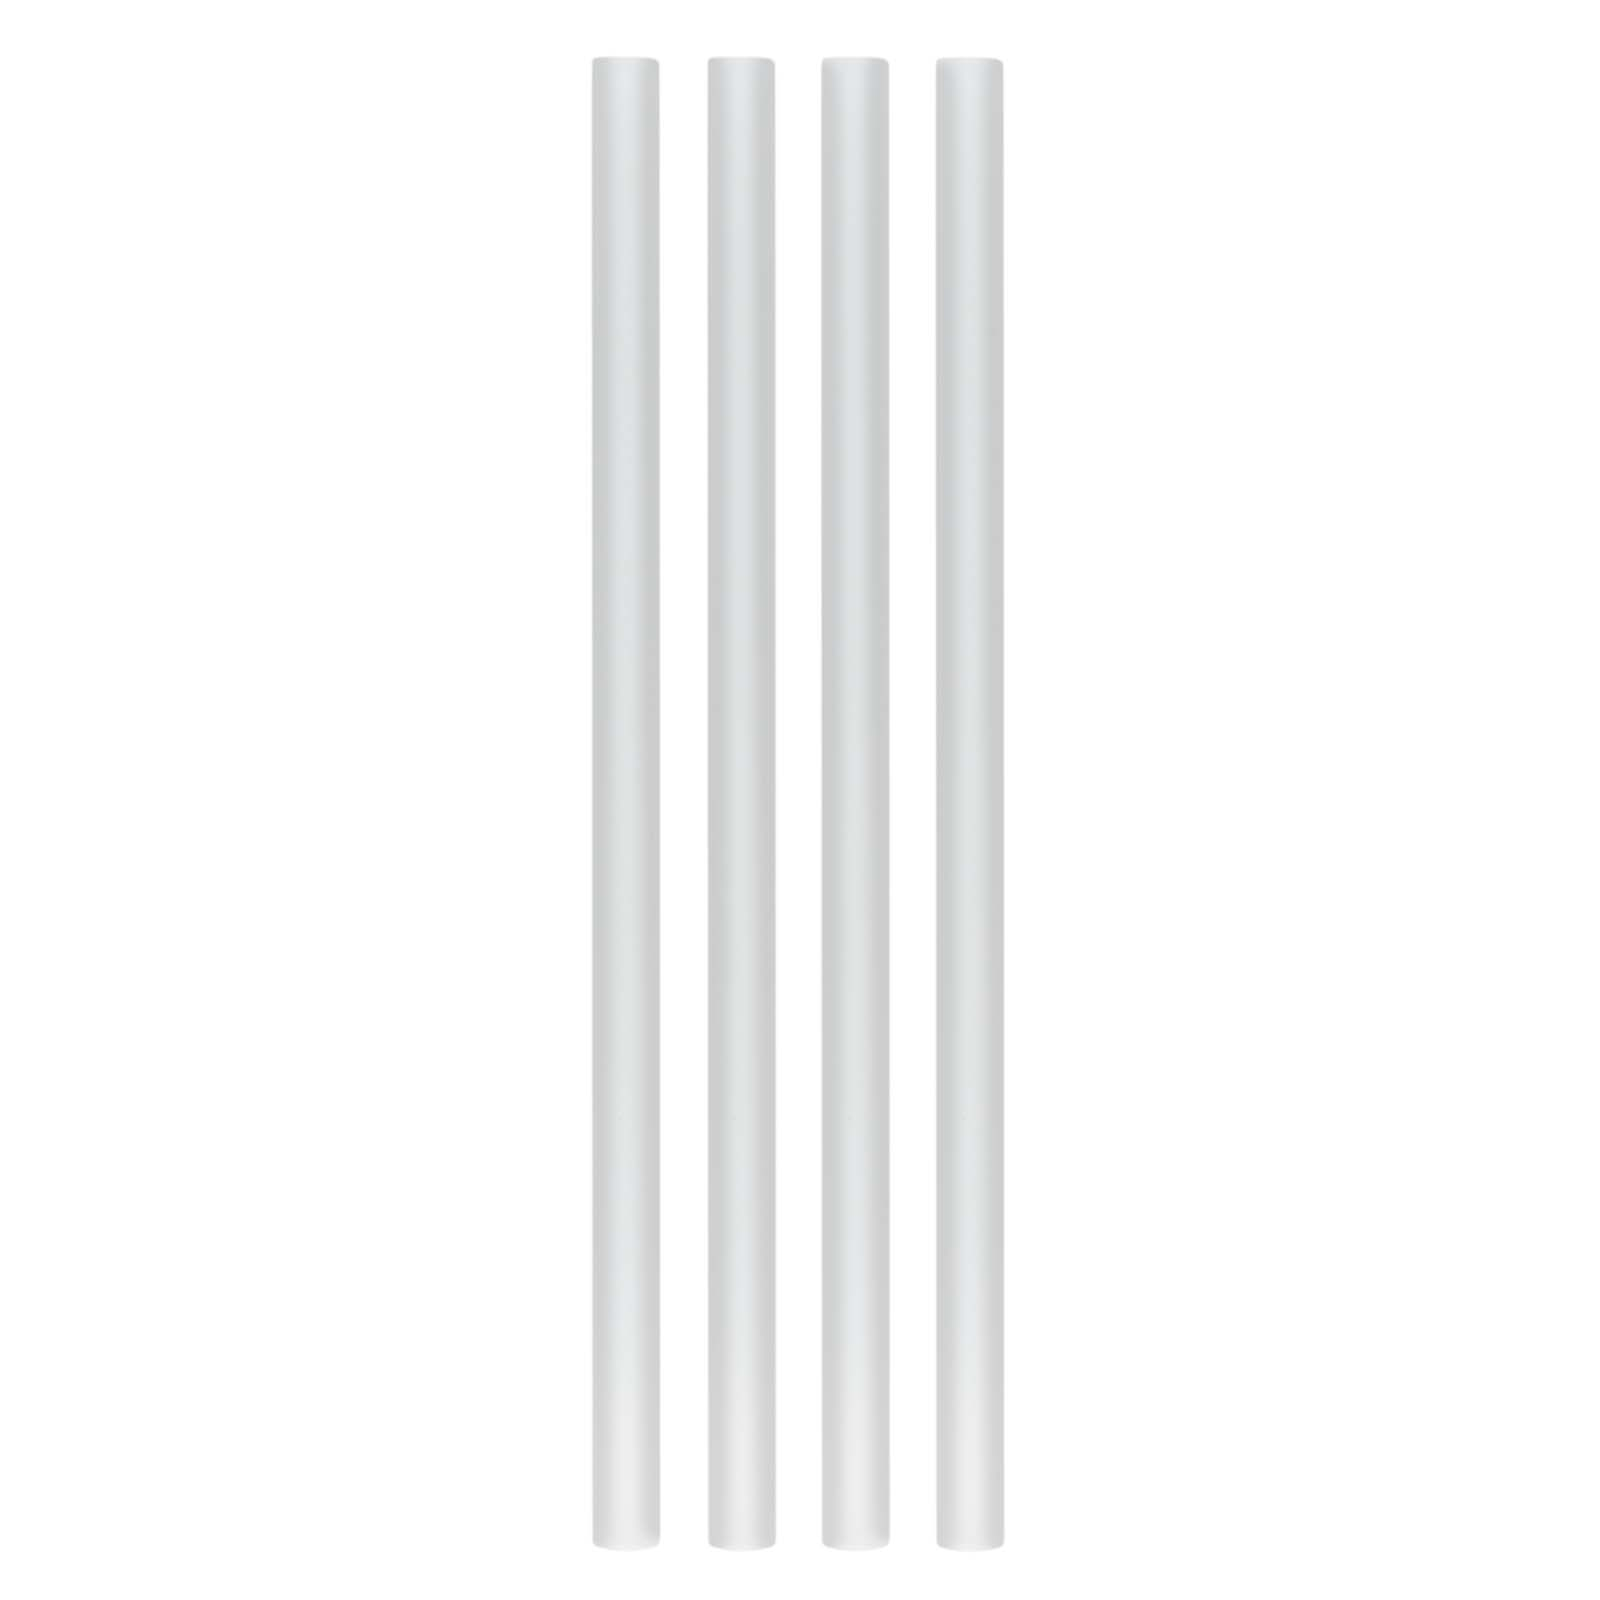 Replacement Straws For 14 oz Tritan Bottles (4-Pack)